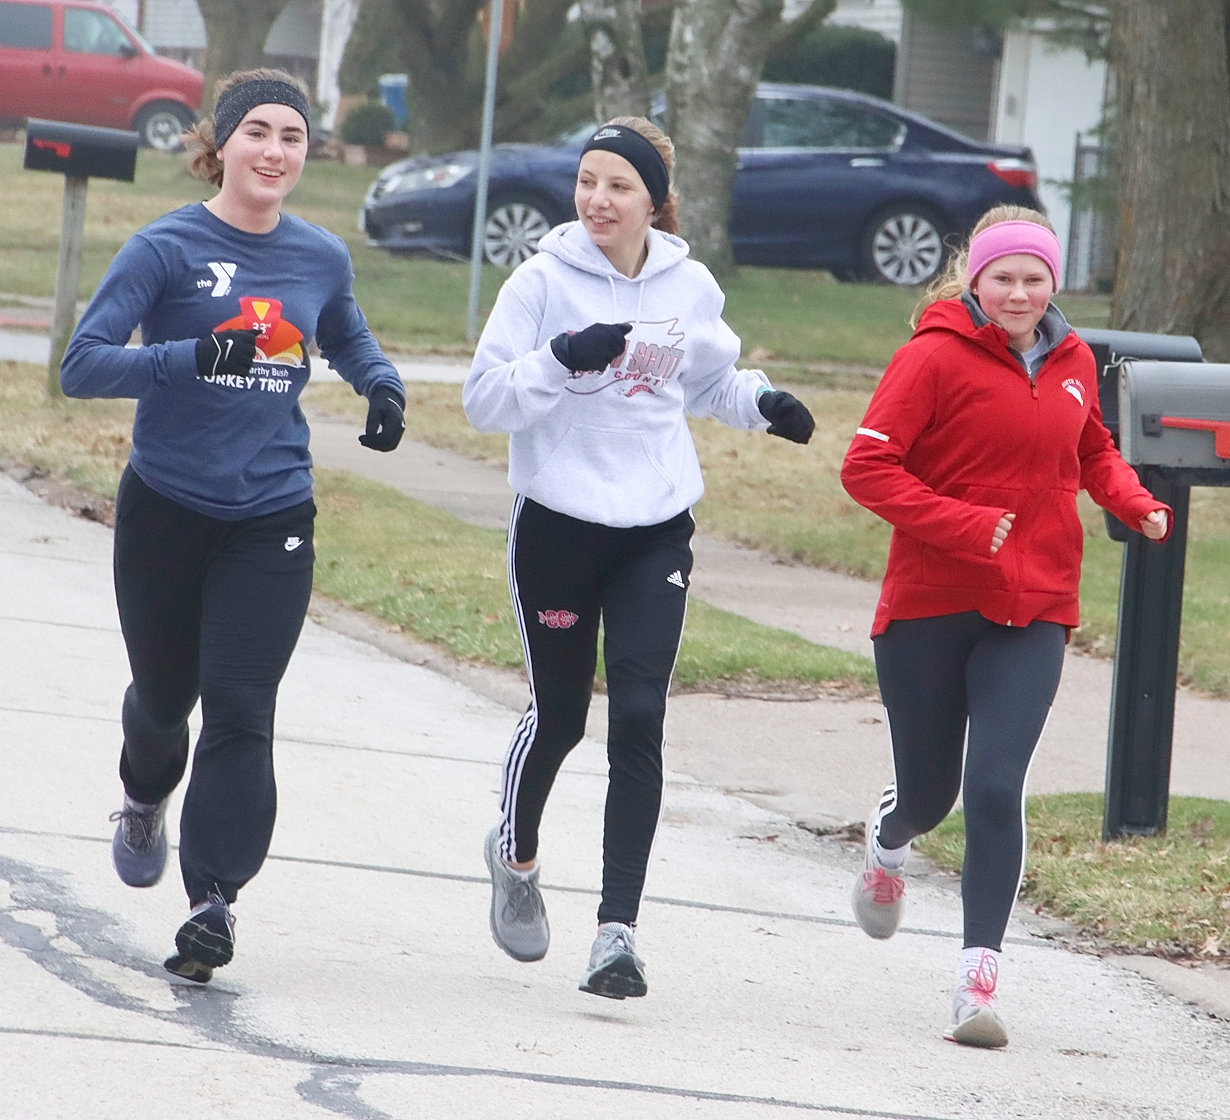 Ava Garrard, Kaitlyn Knoche and Sadie West, all members of North Scott's girls' track team, go on a training run through the streets of Eldridge.